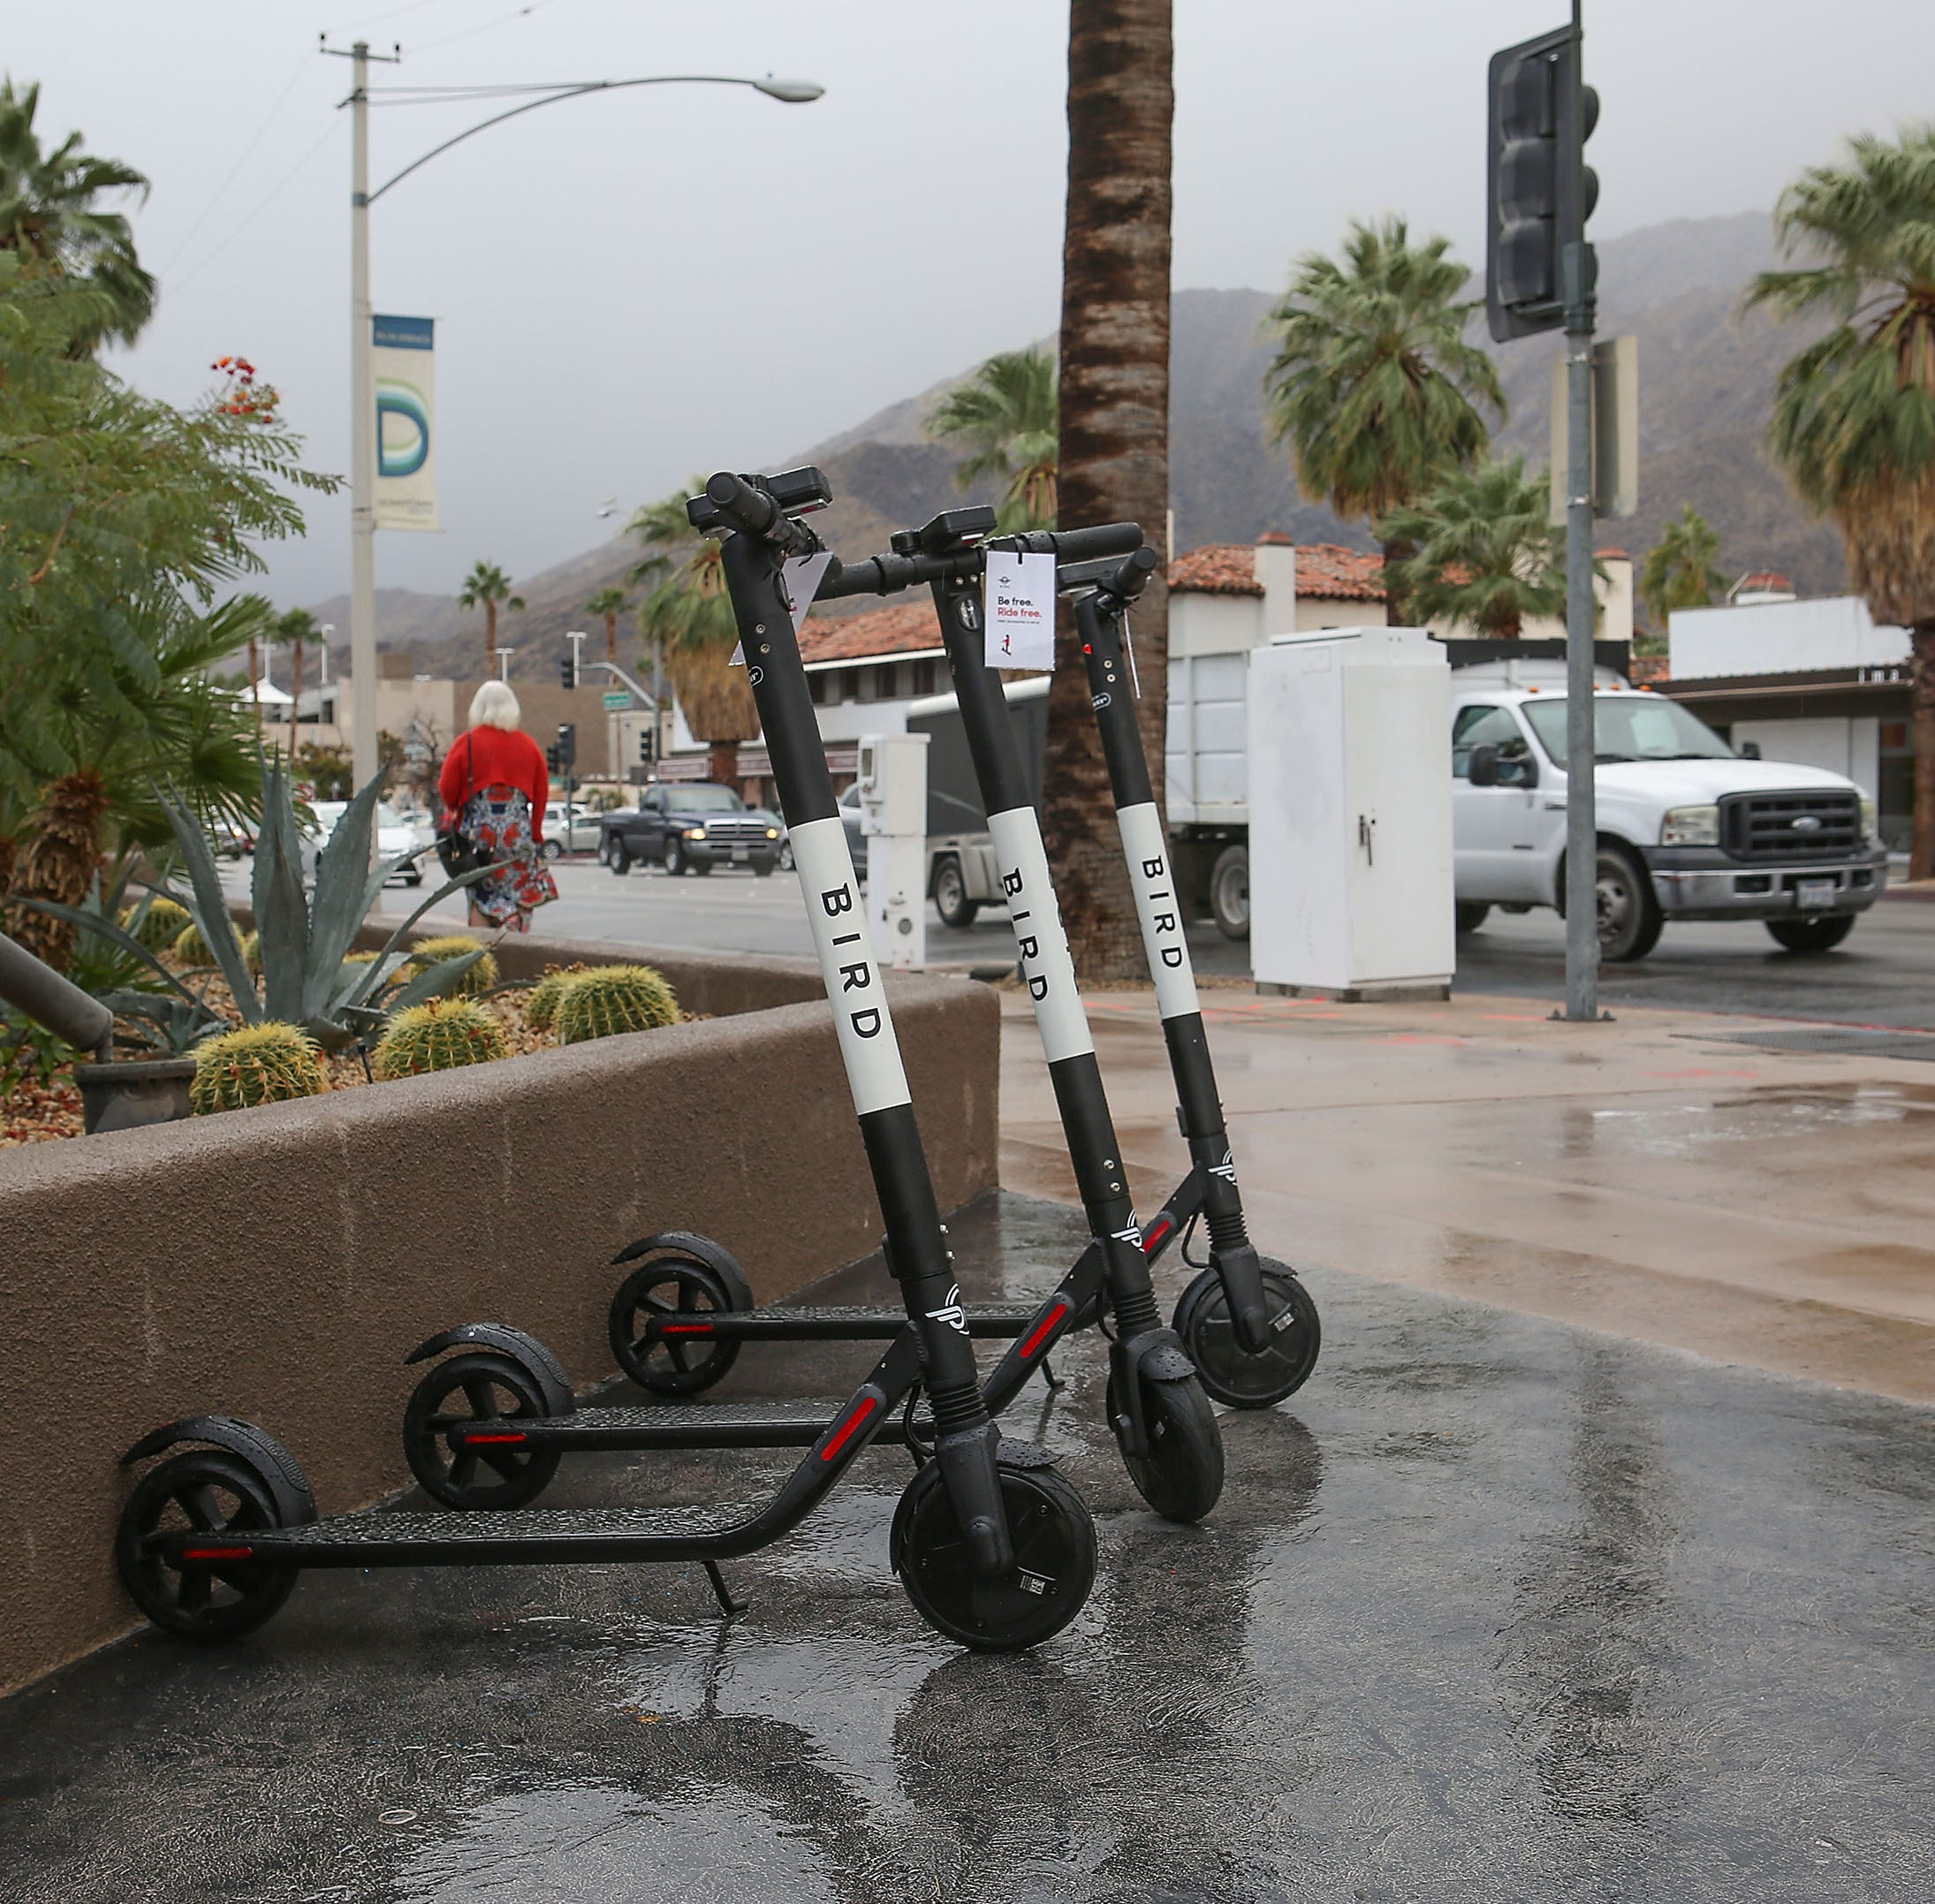 E-scooters may lessen commute times, but how companies like Bird deploy them is ruffling feathers